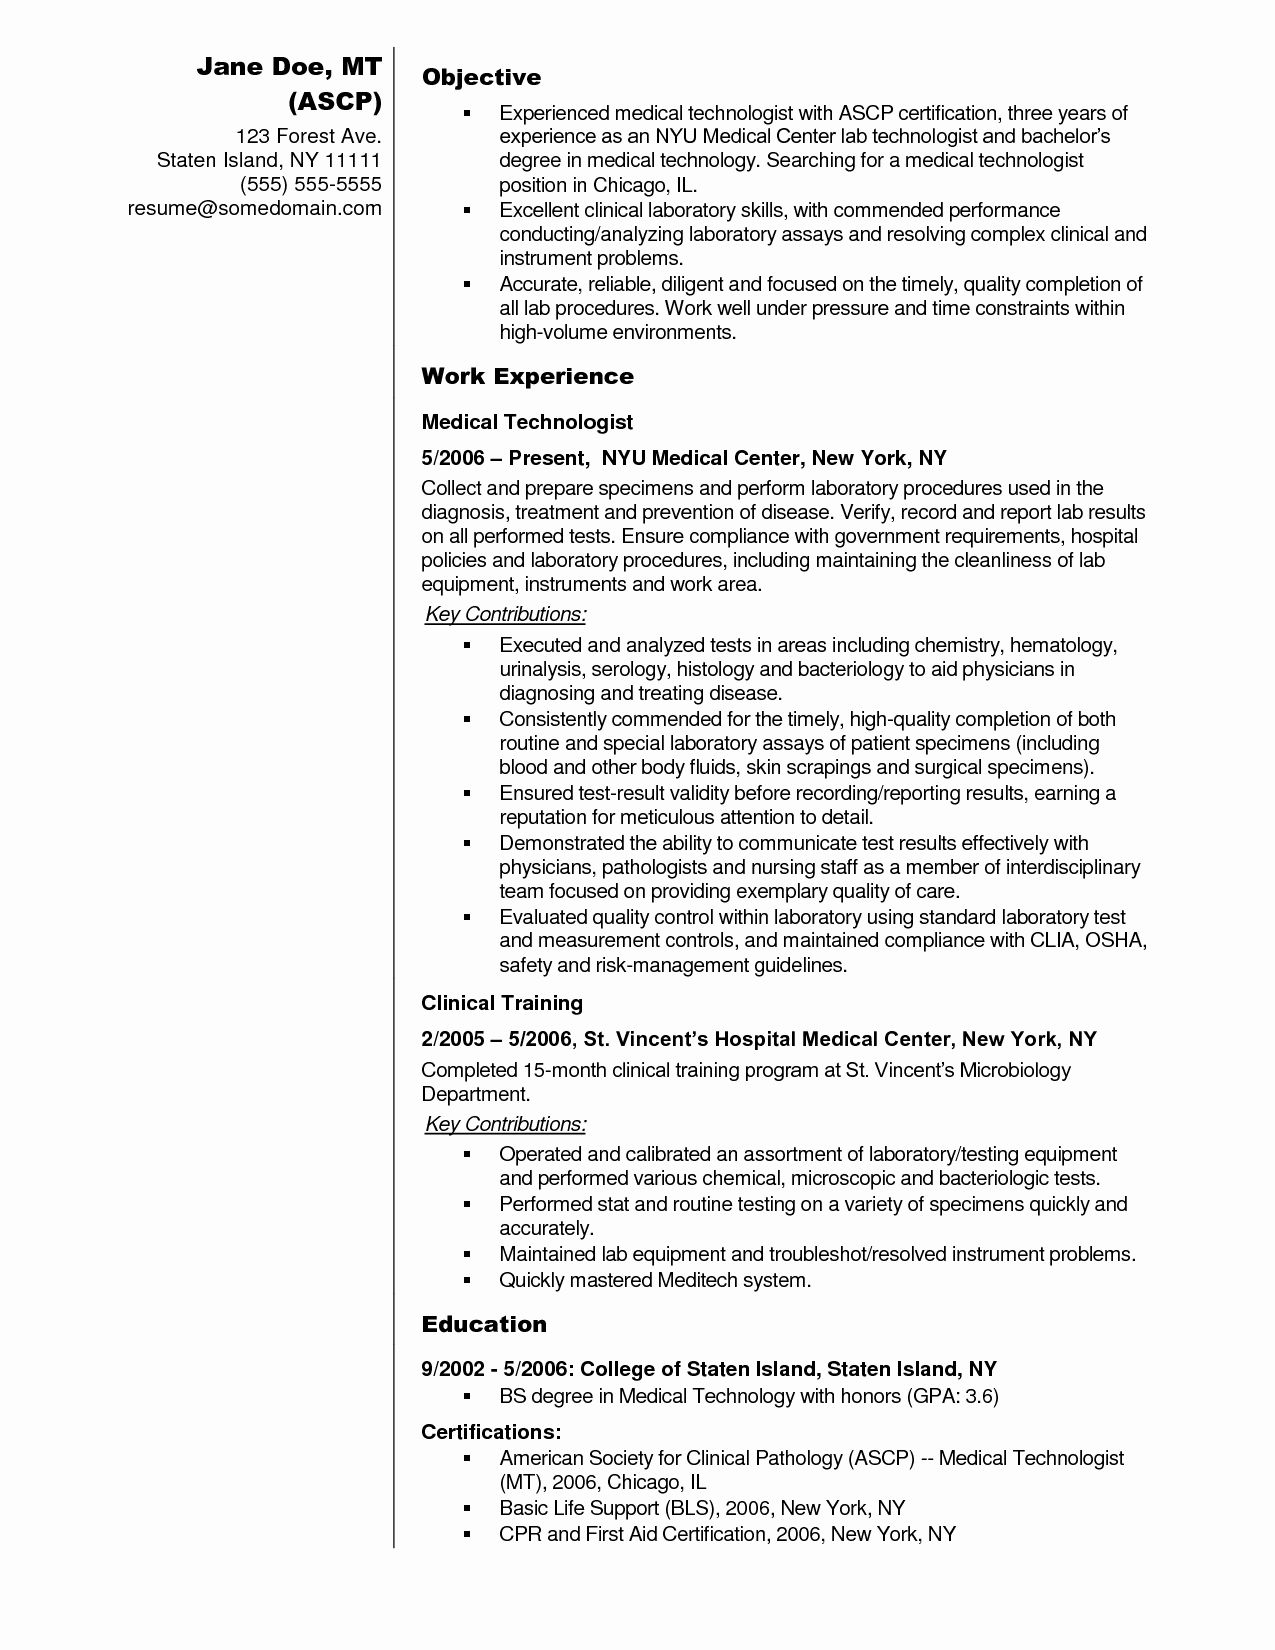 clinical laboratory scientist resume awesome sample medical technologist examples lab Resume Resume Templates Medical Laboratory Technologist